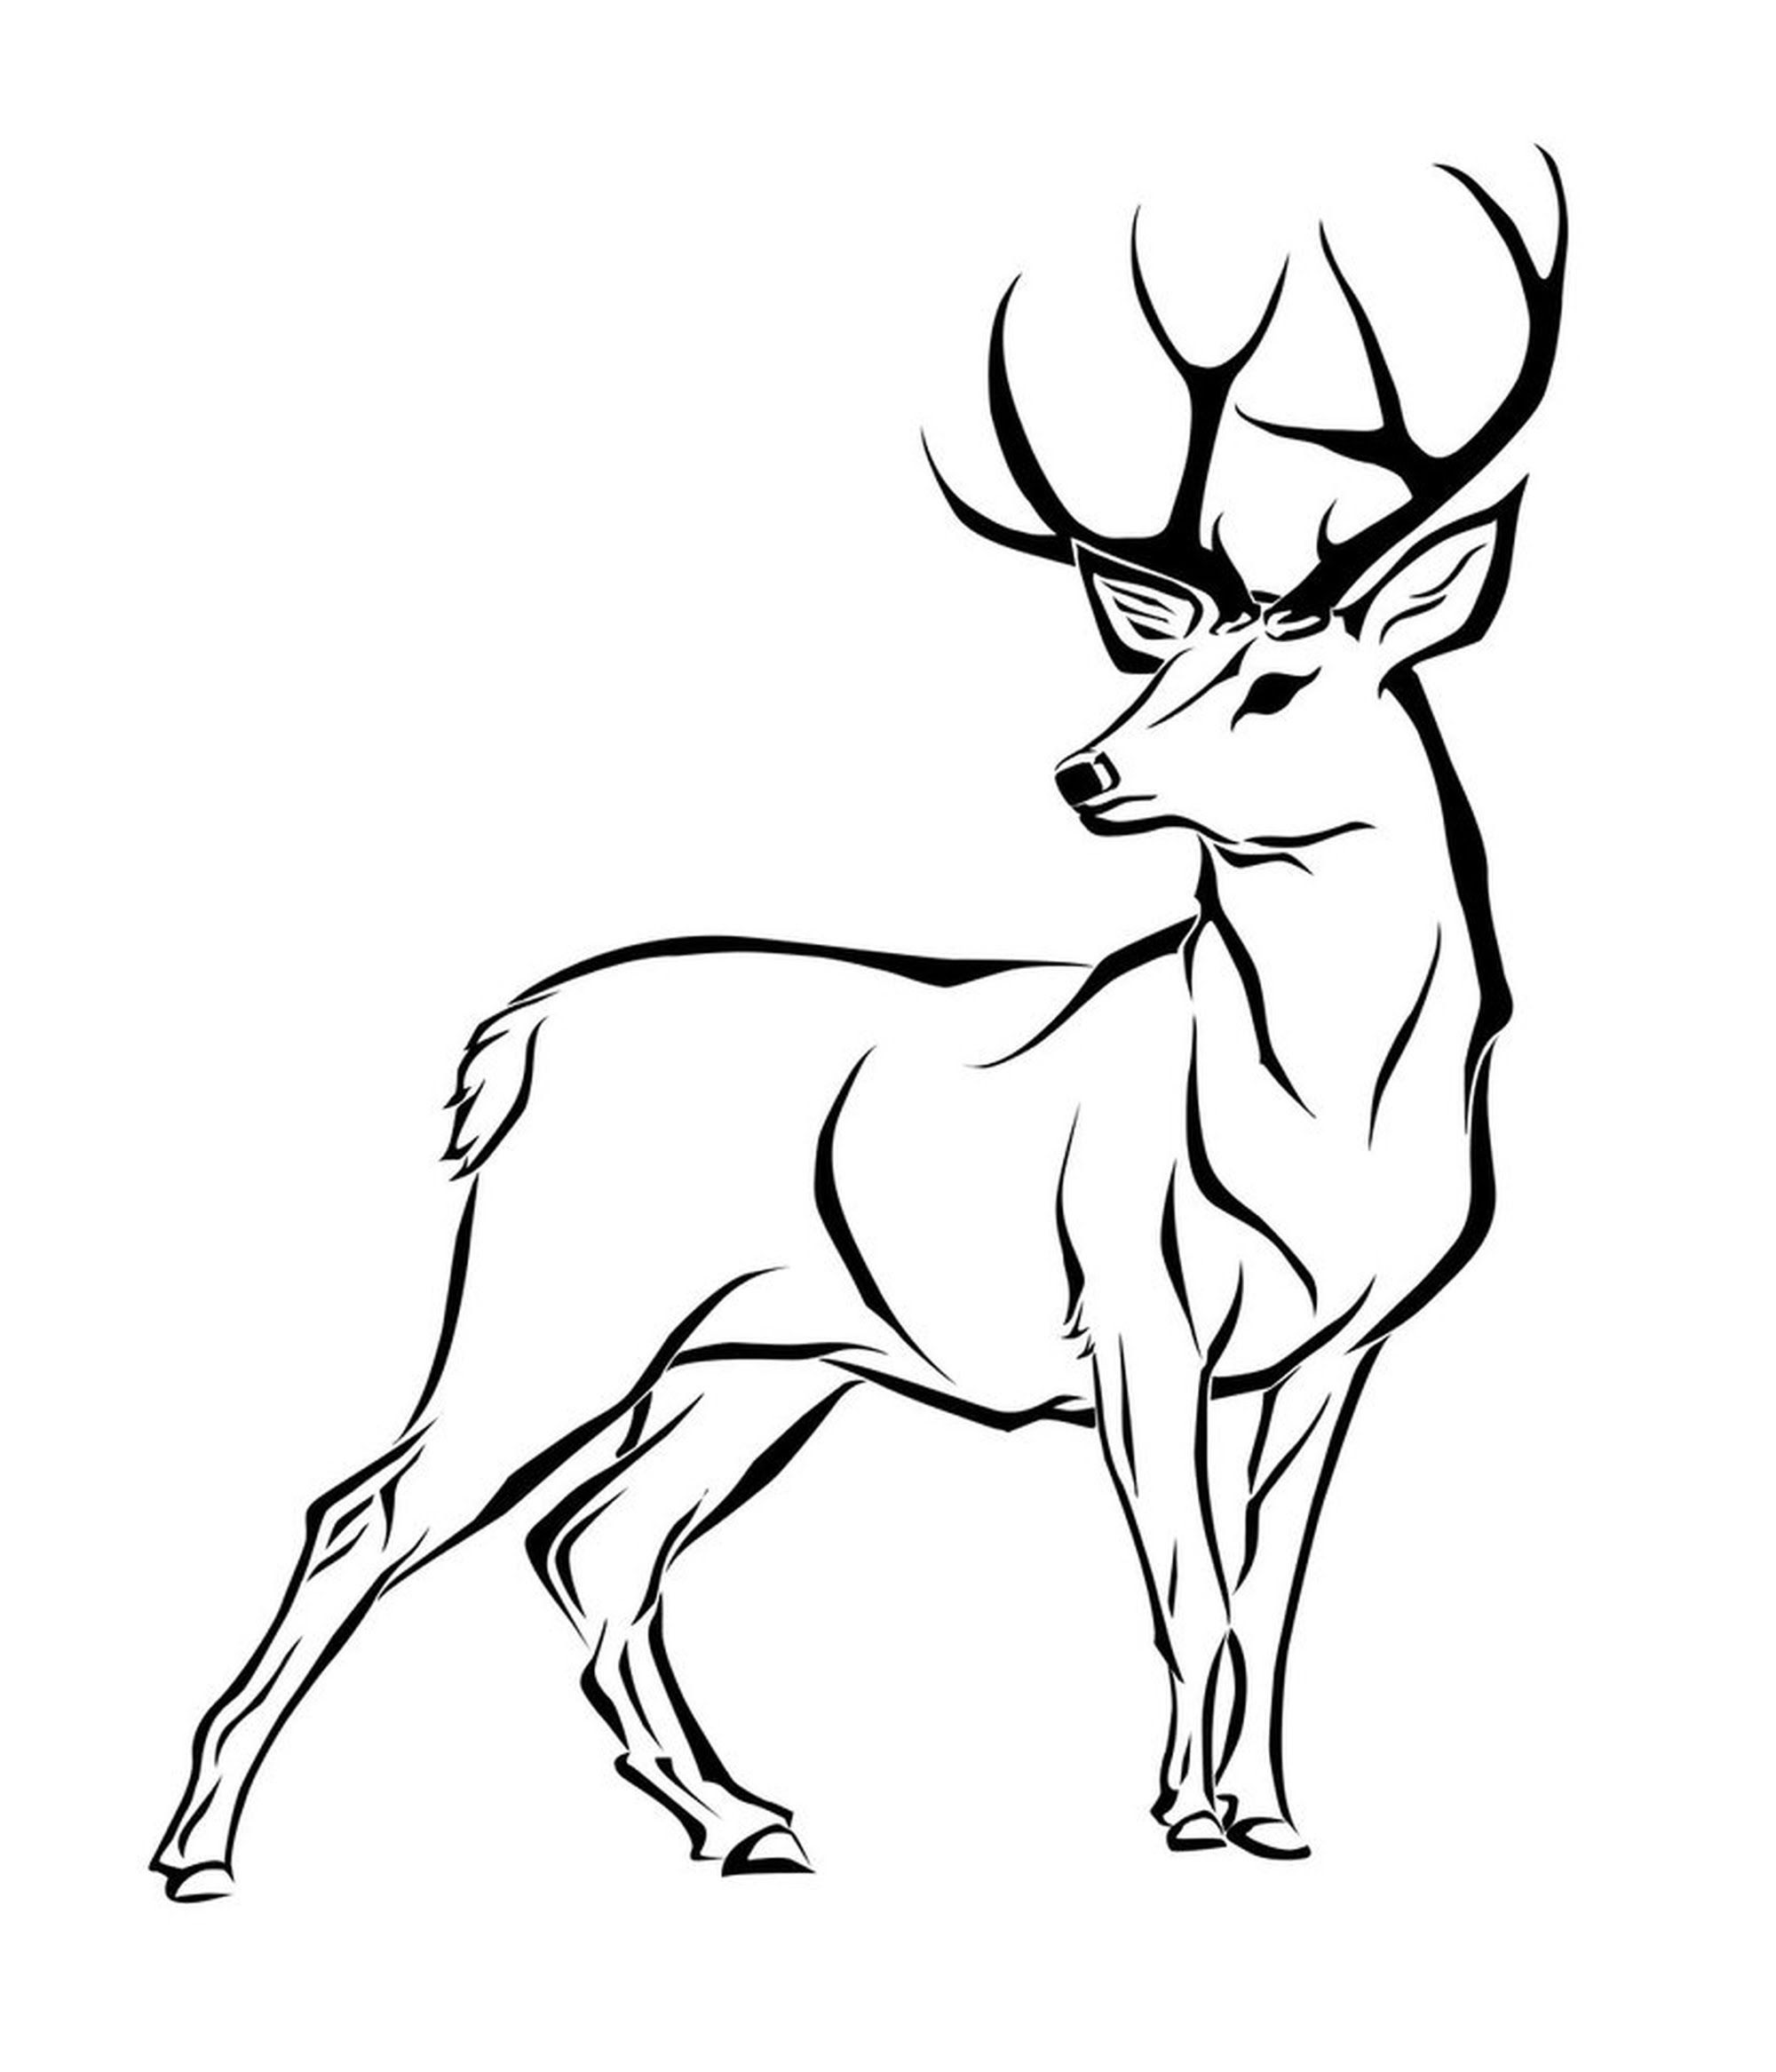 how to draw a deer kids coloring simple lines drawing in 2018